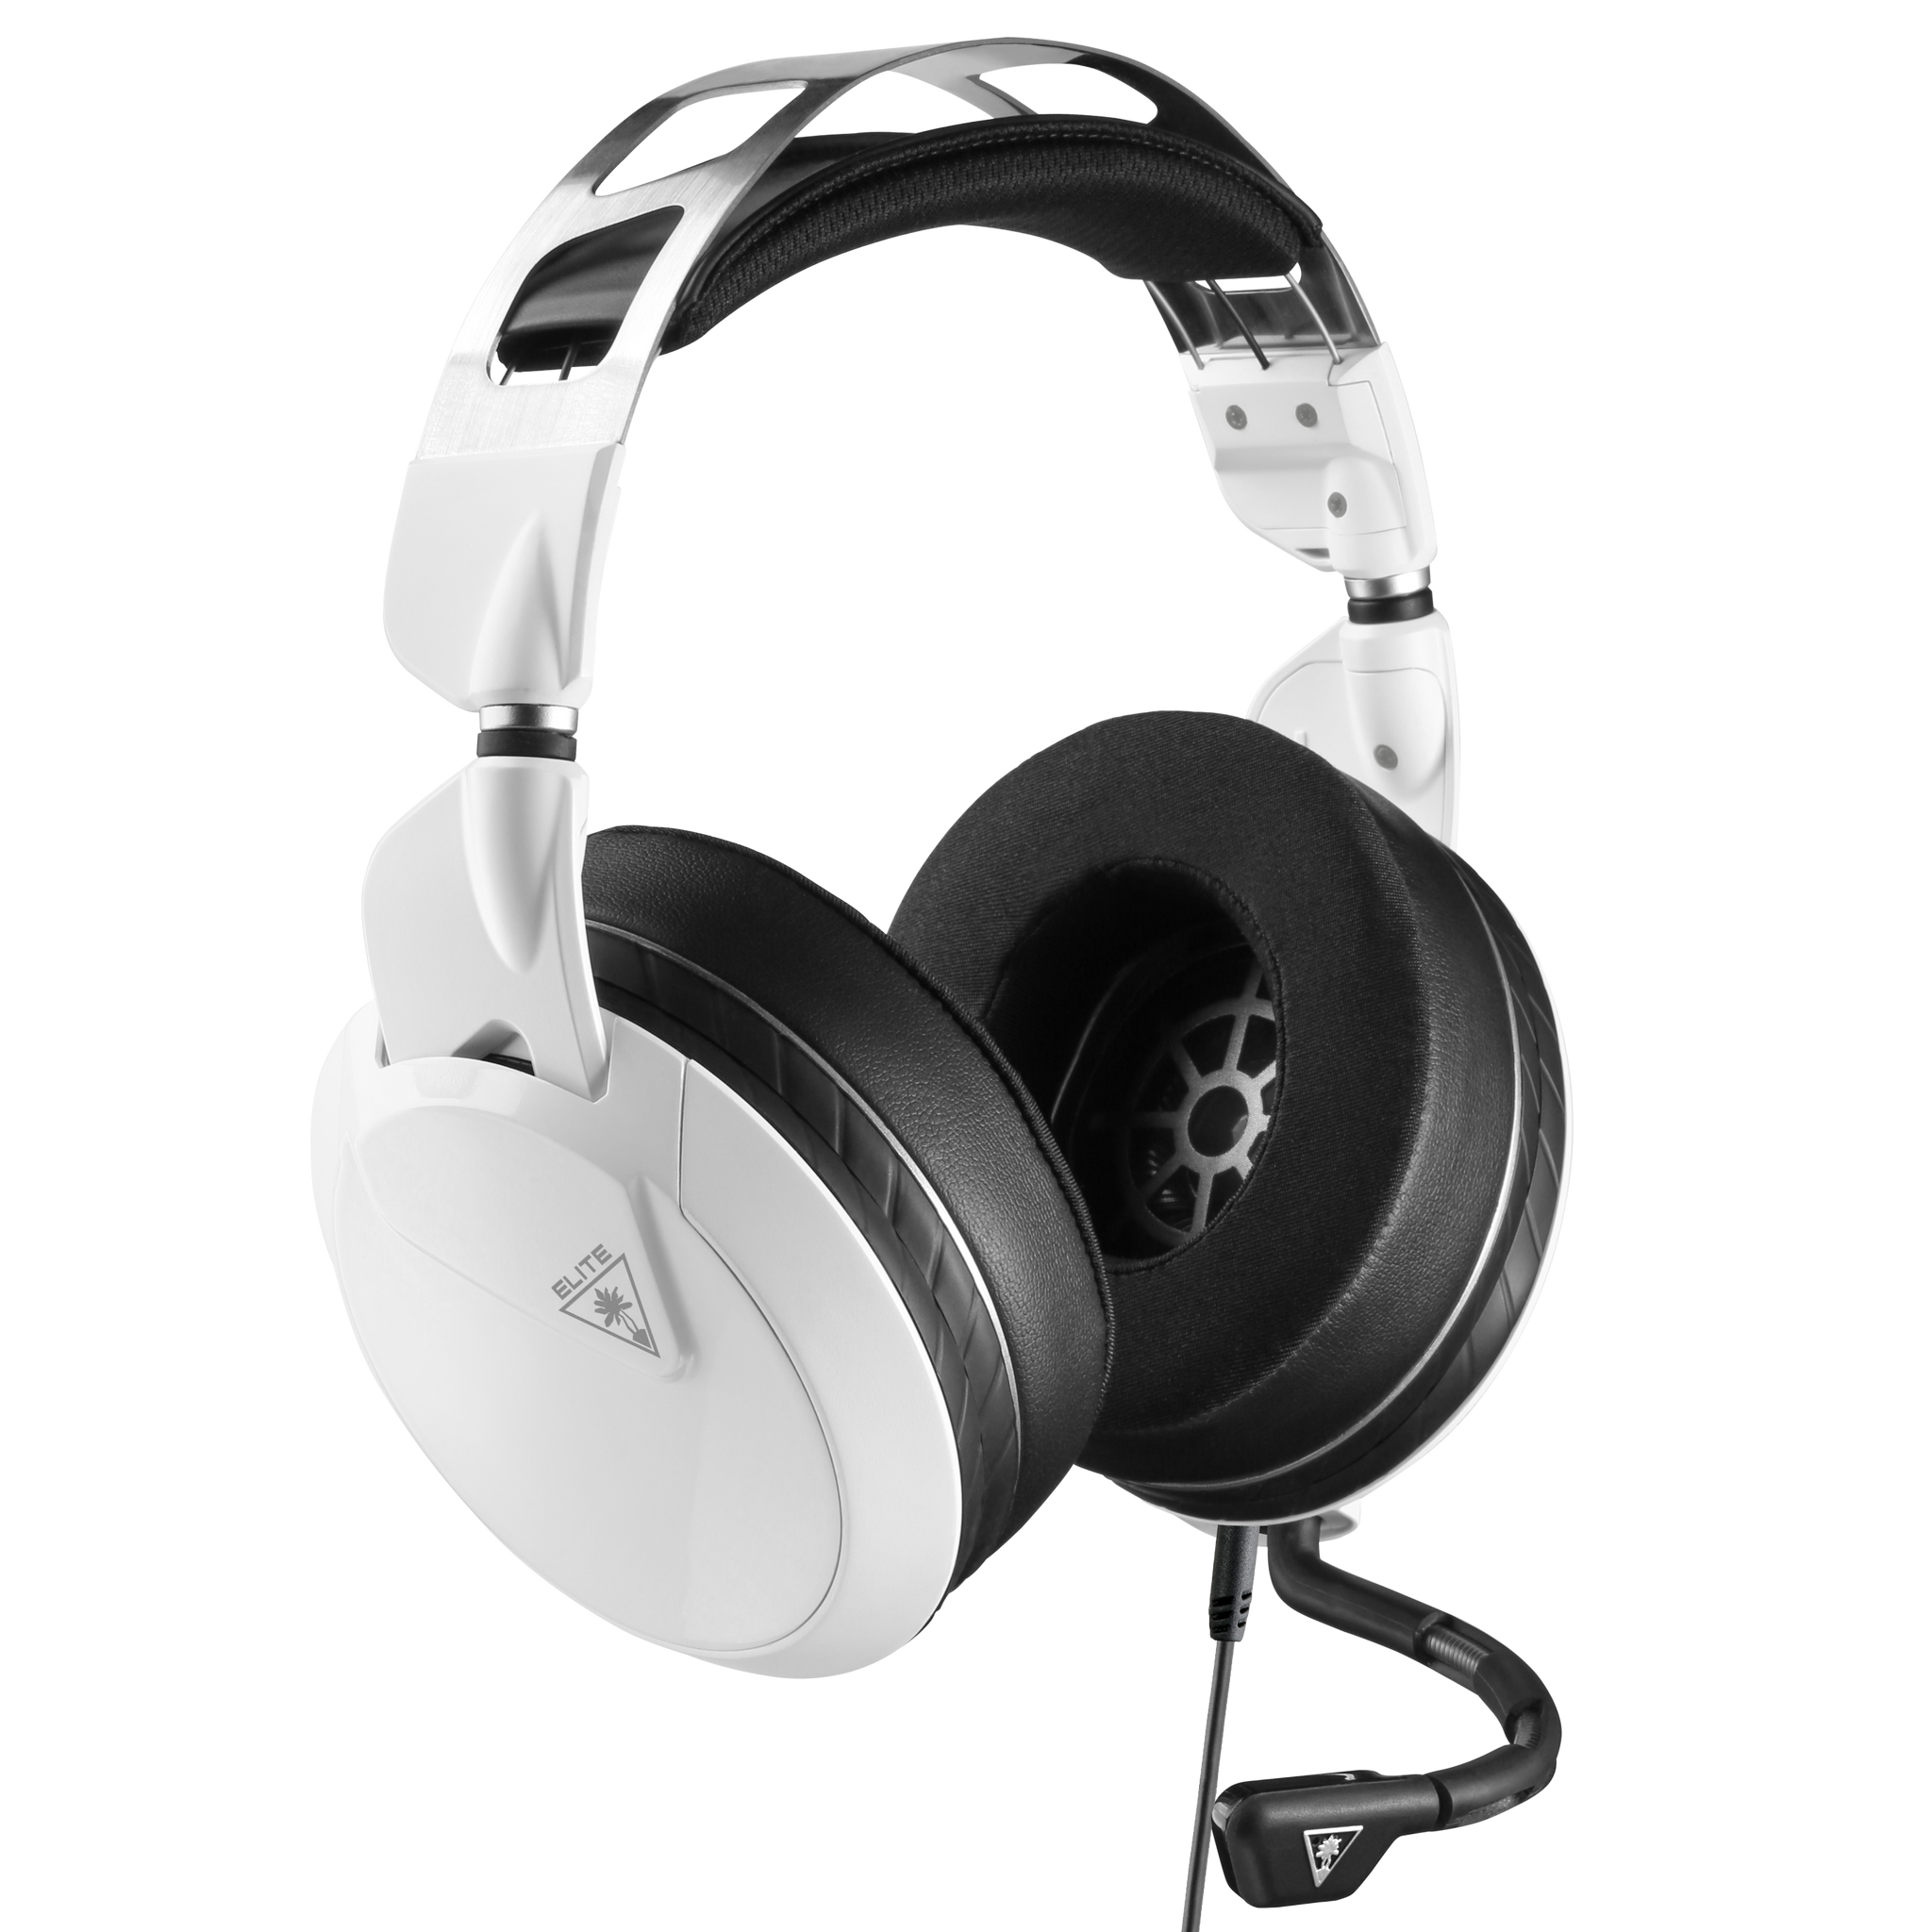 Elite Pro 2 Pro Performance Gaming Headset - White